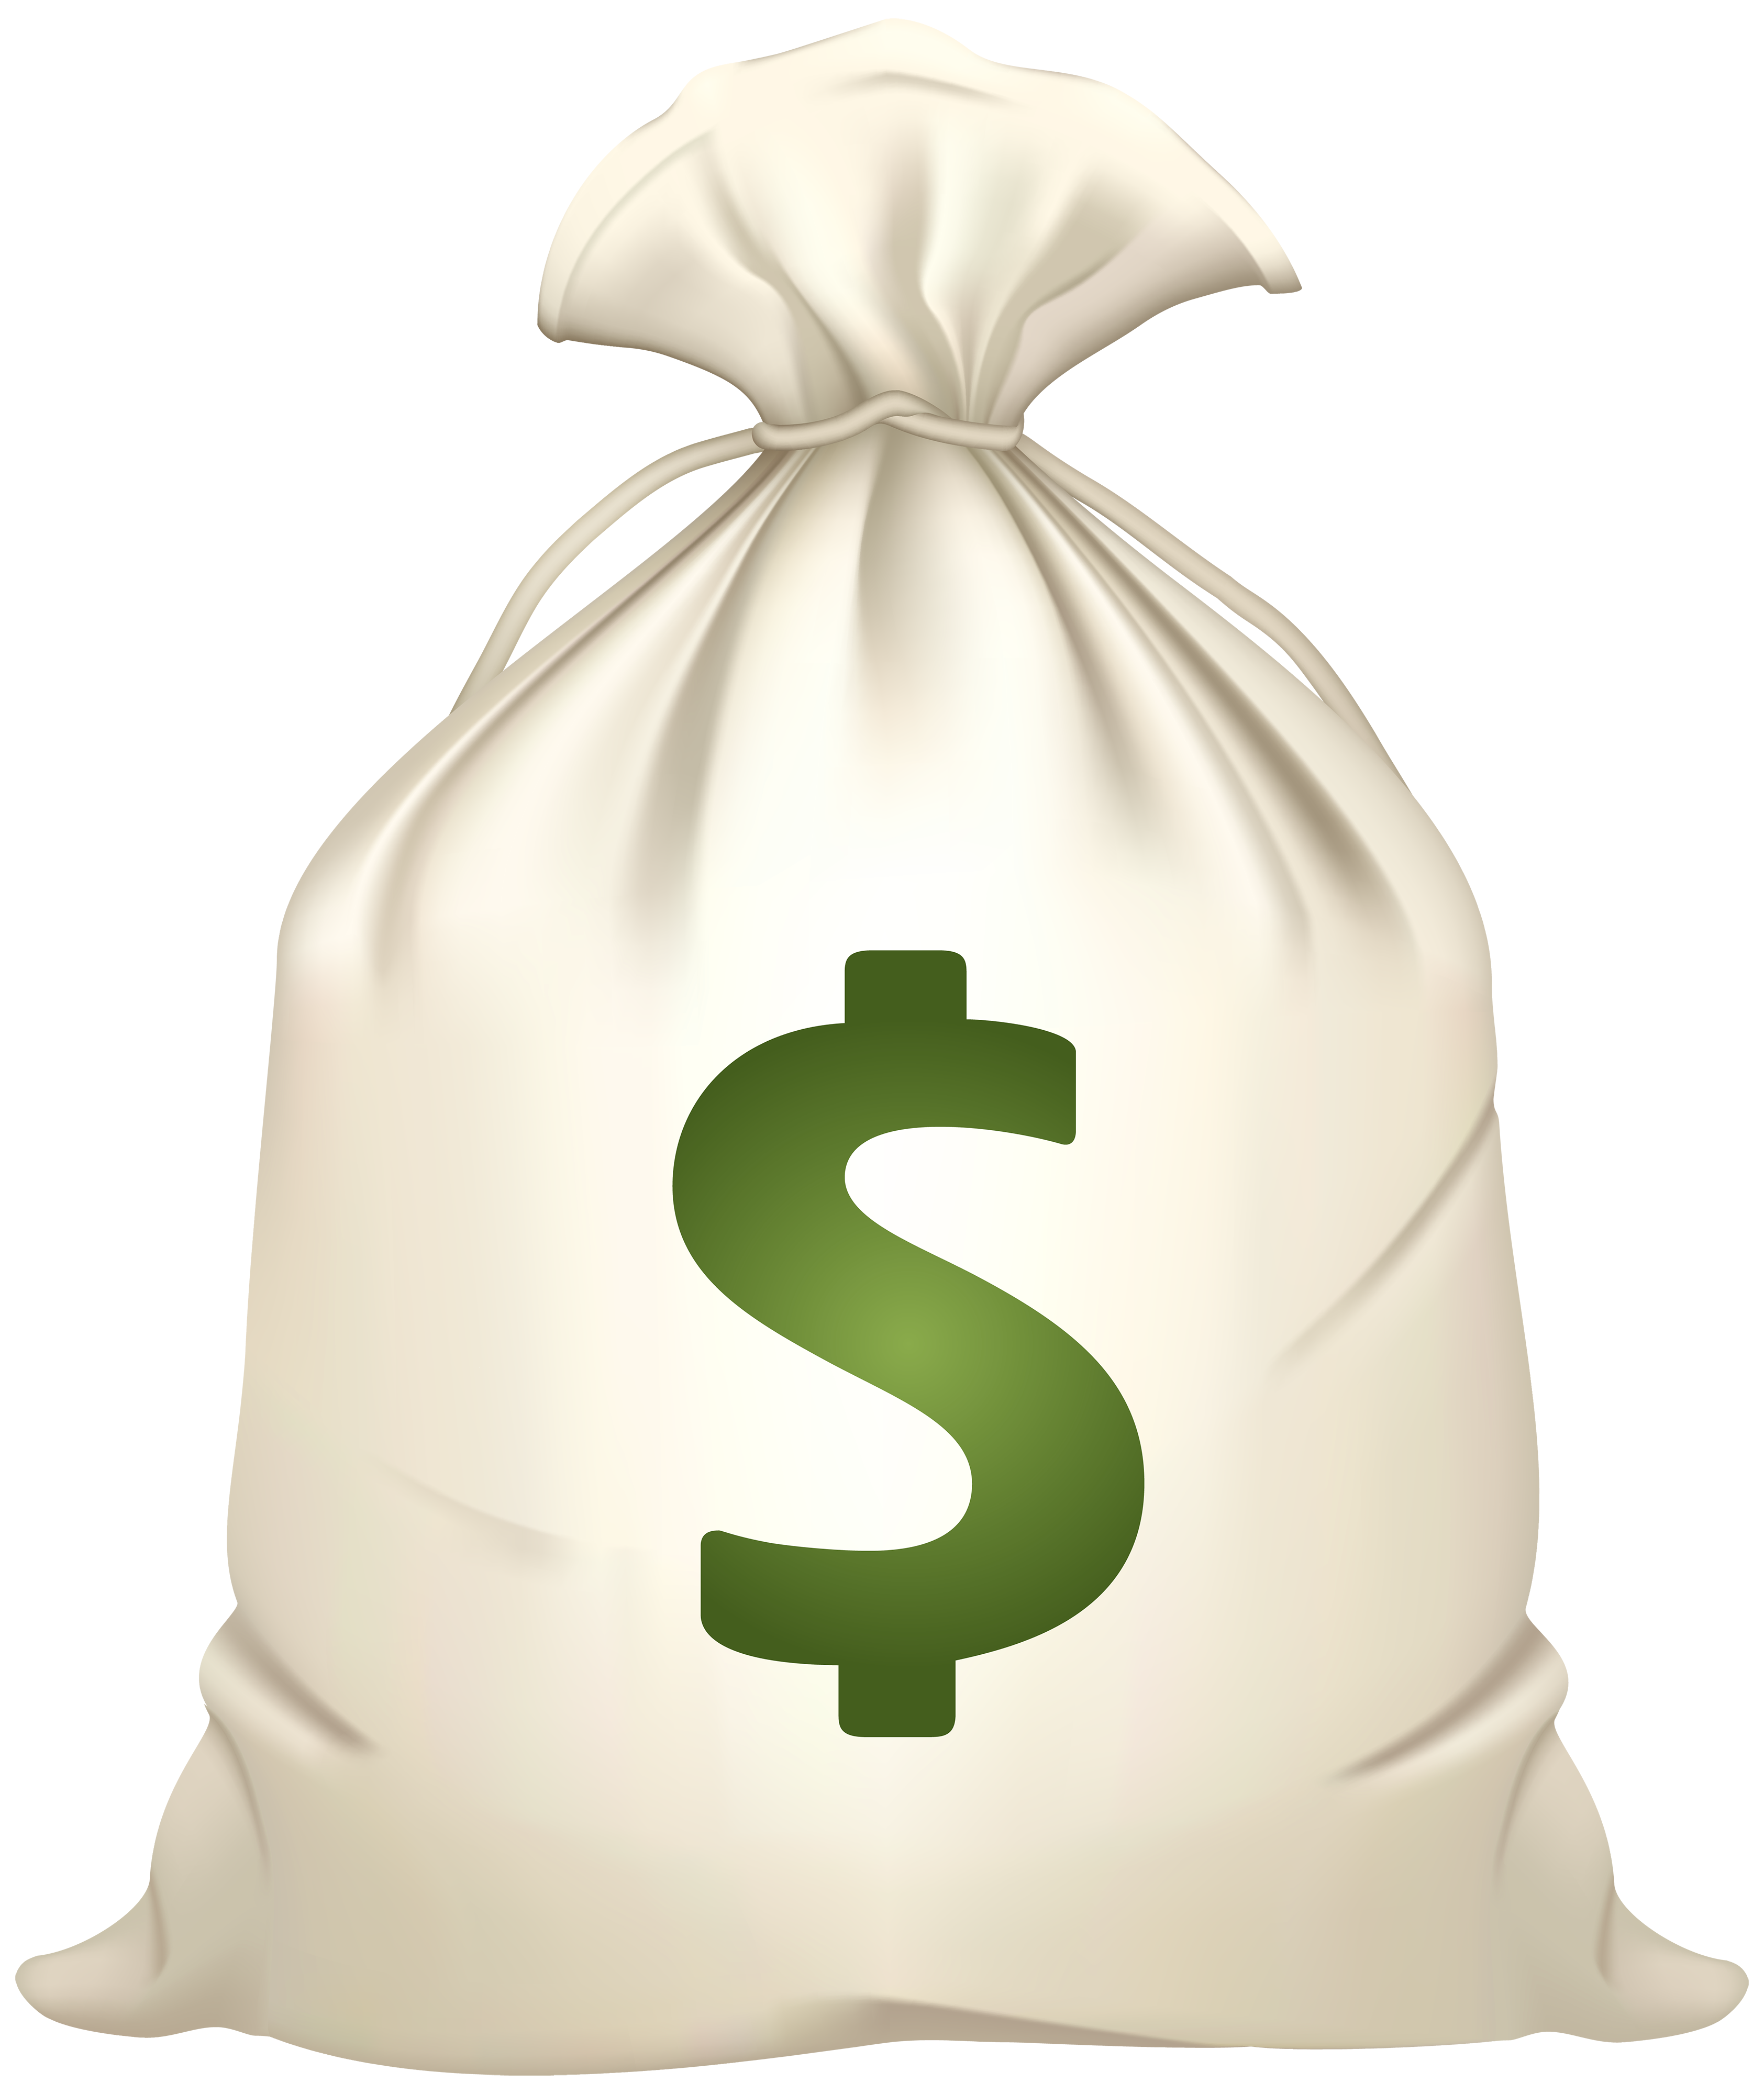 Bag of money clipart black and white svg royalty free download Bag of Money PNG Clipart - Best WEB Clipart svg royalty free download